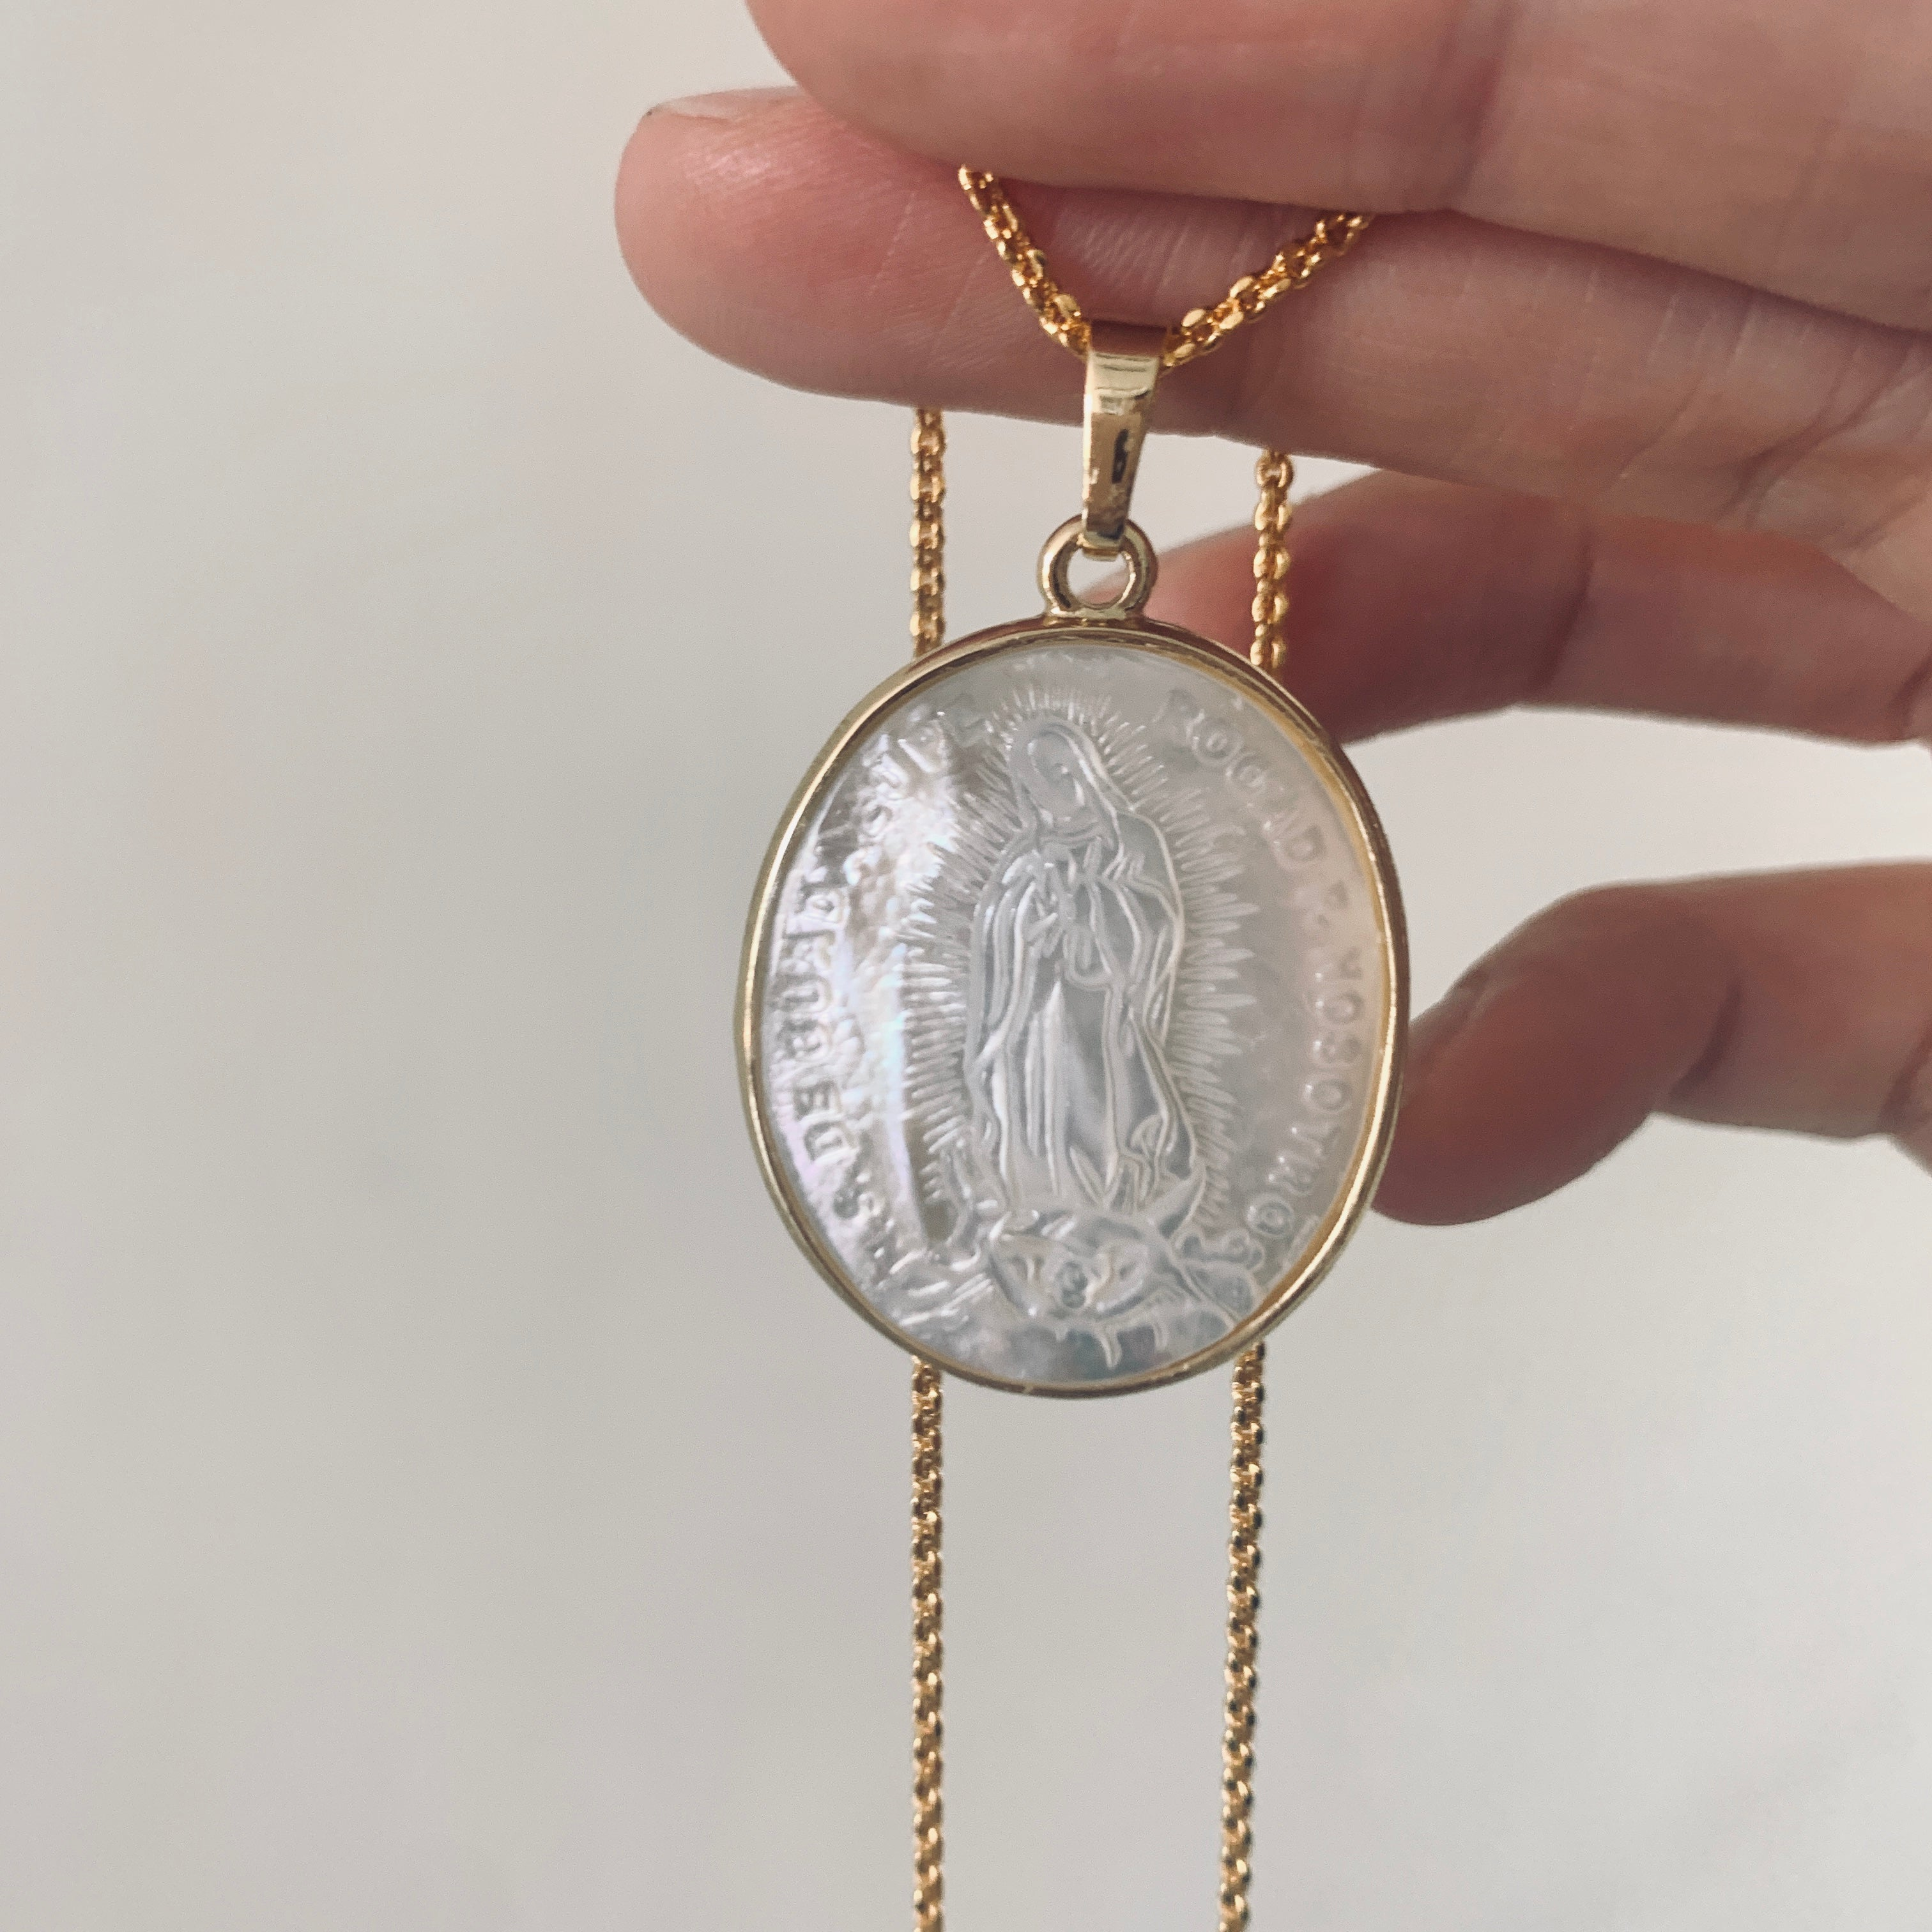 Mesa Mother of Pearl pendant necklace